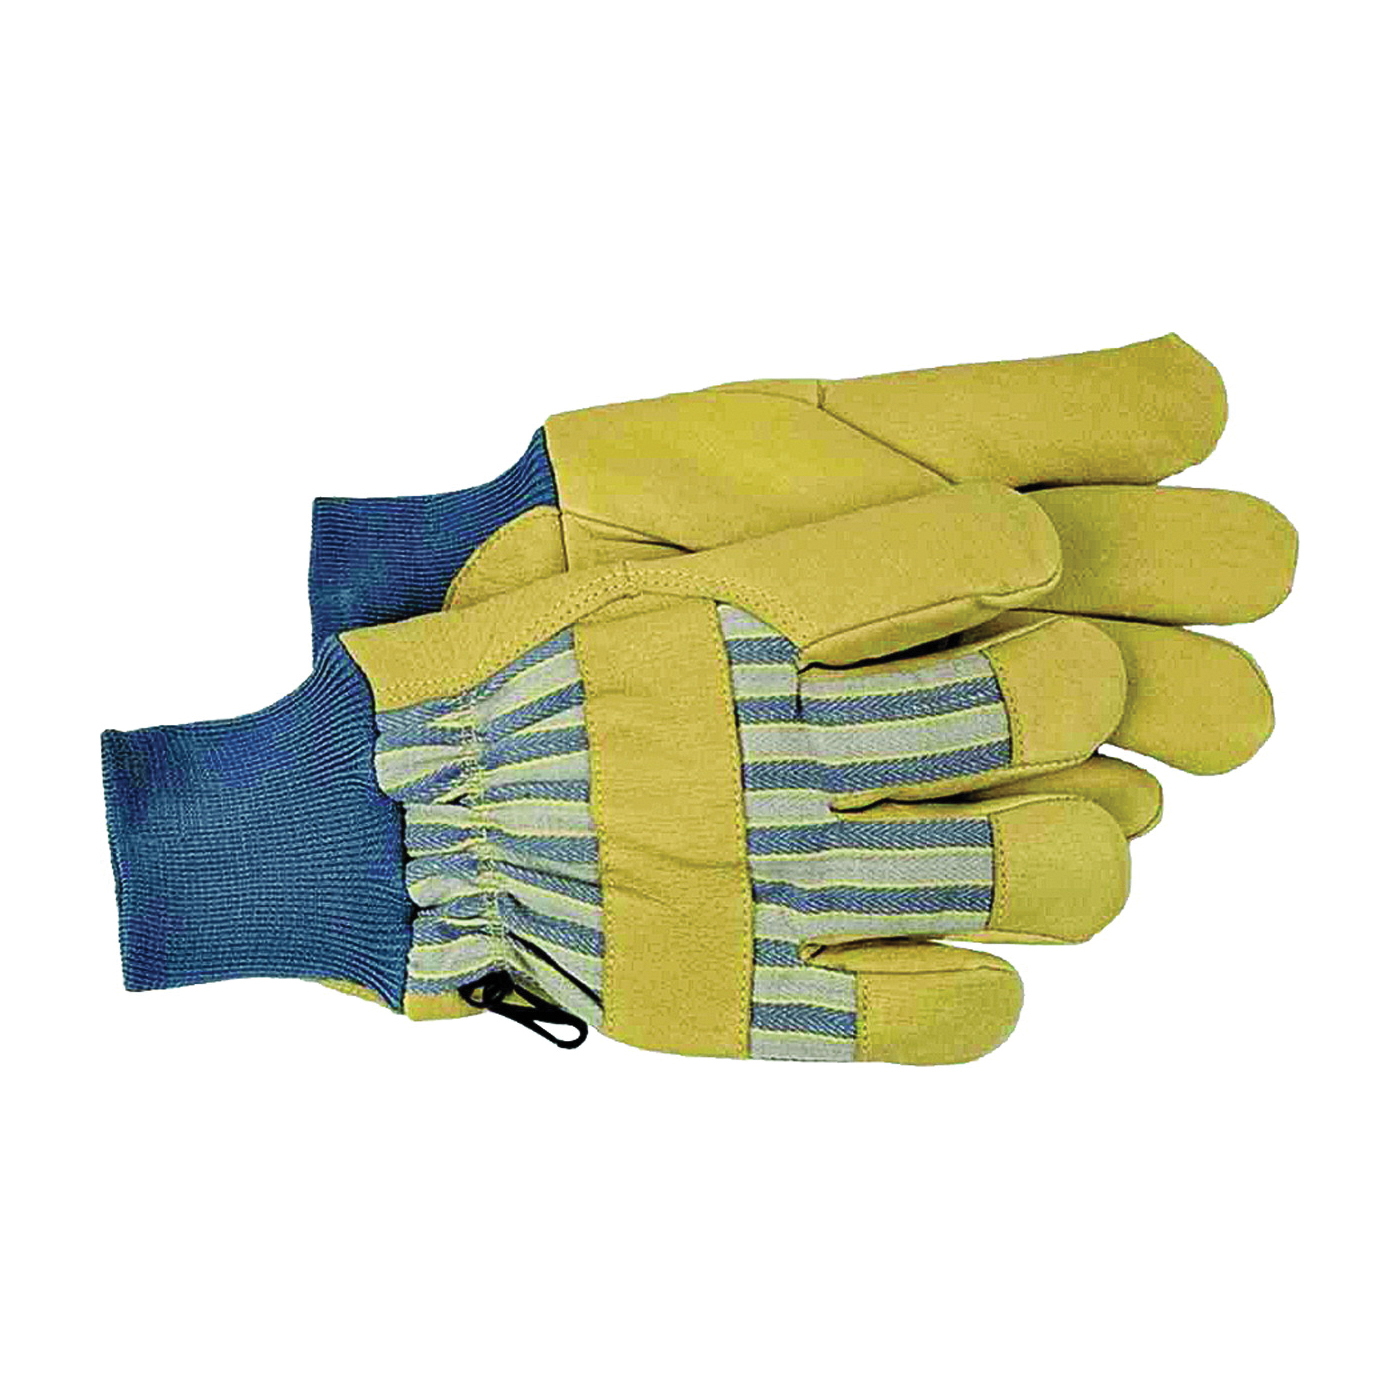 Picture of BOSS 4341L Protective Gloves, L, Wing Thumb, Knit Wrist Cuff, Blue/Tan